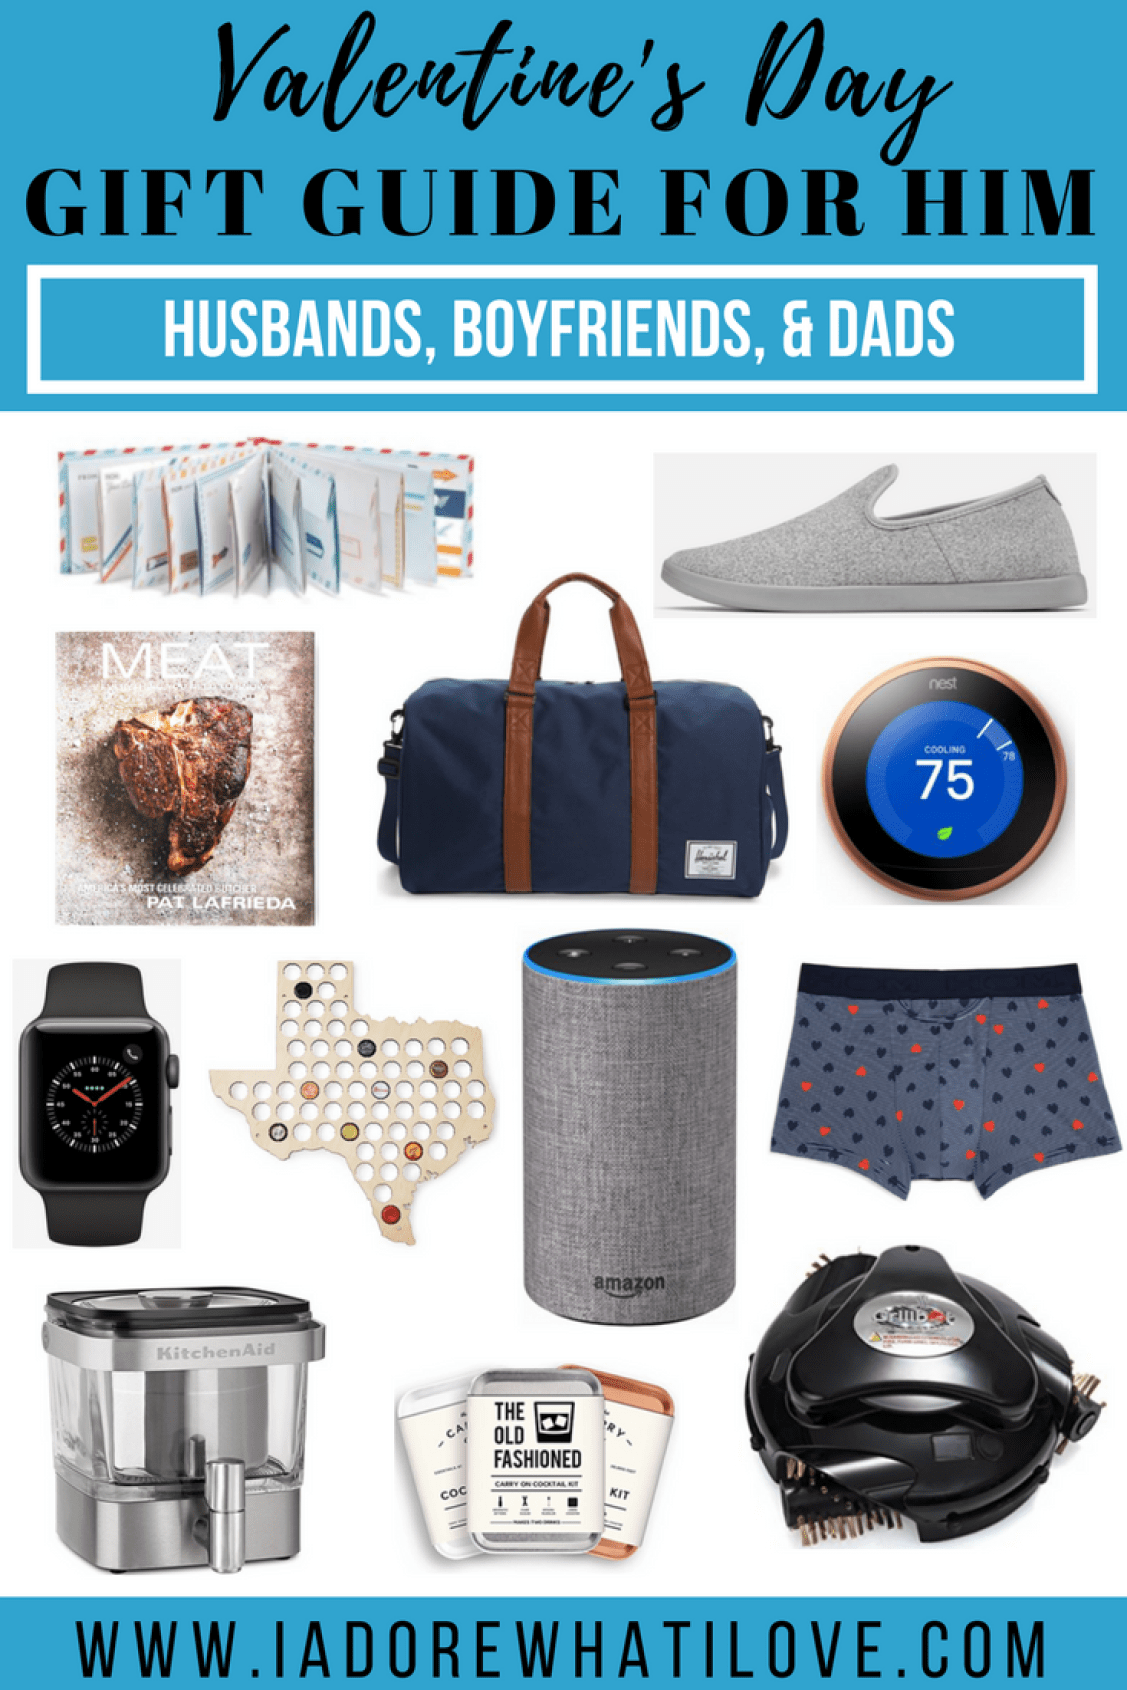 Valentine's Day Gift Guide for Him // I Adore What I Love Blog // www.iadorewhatilove.com #iadorewhatilove